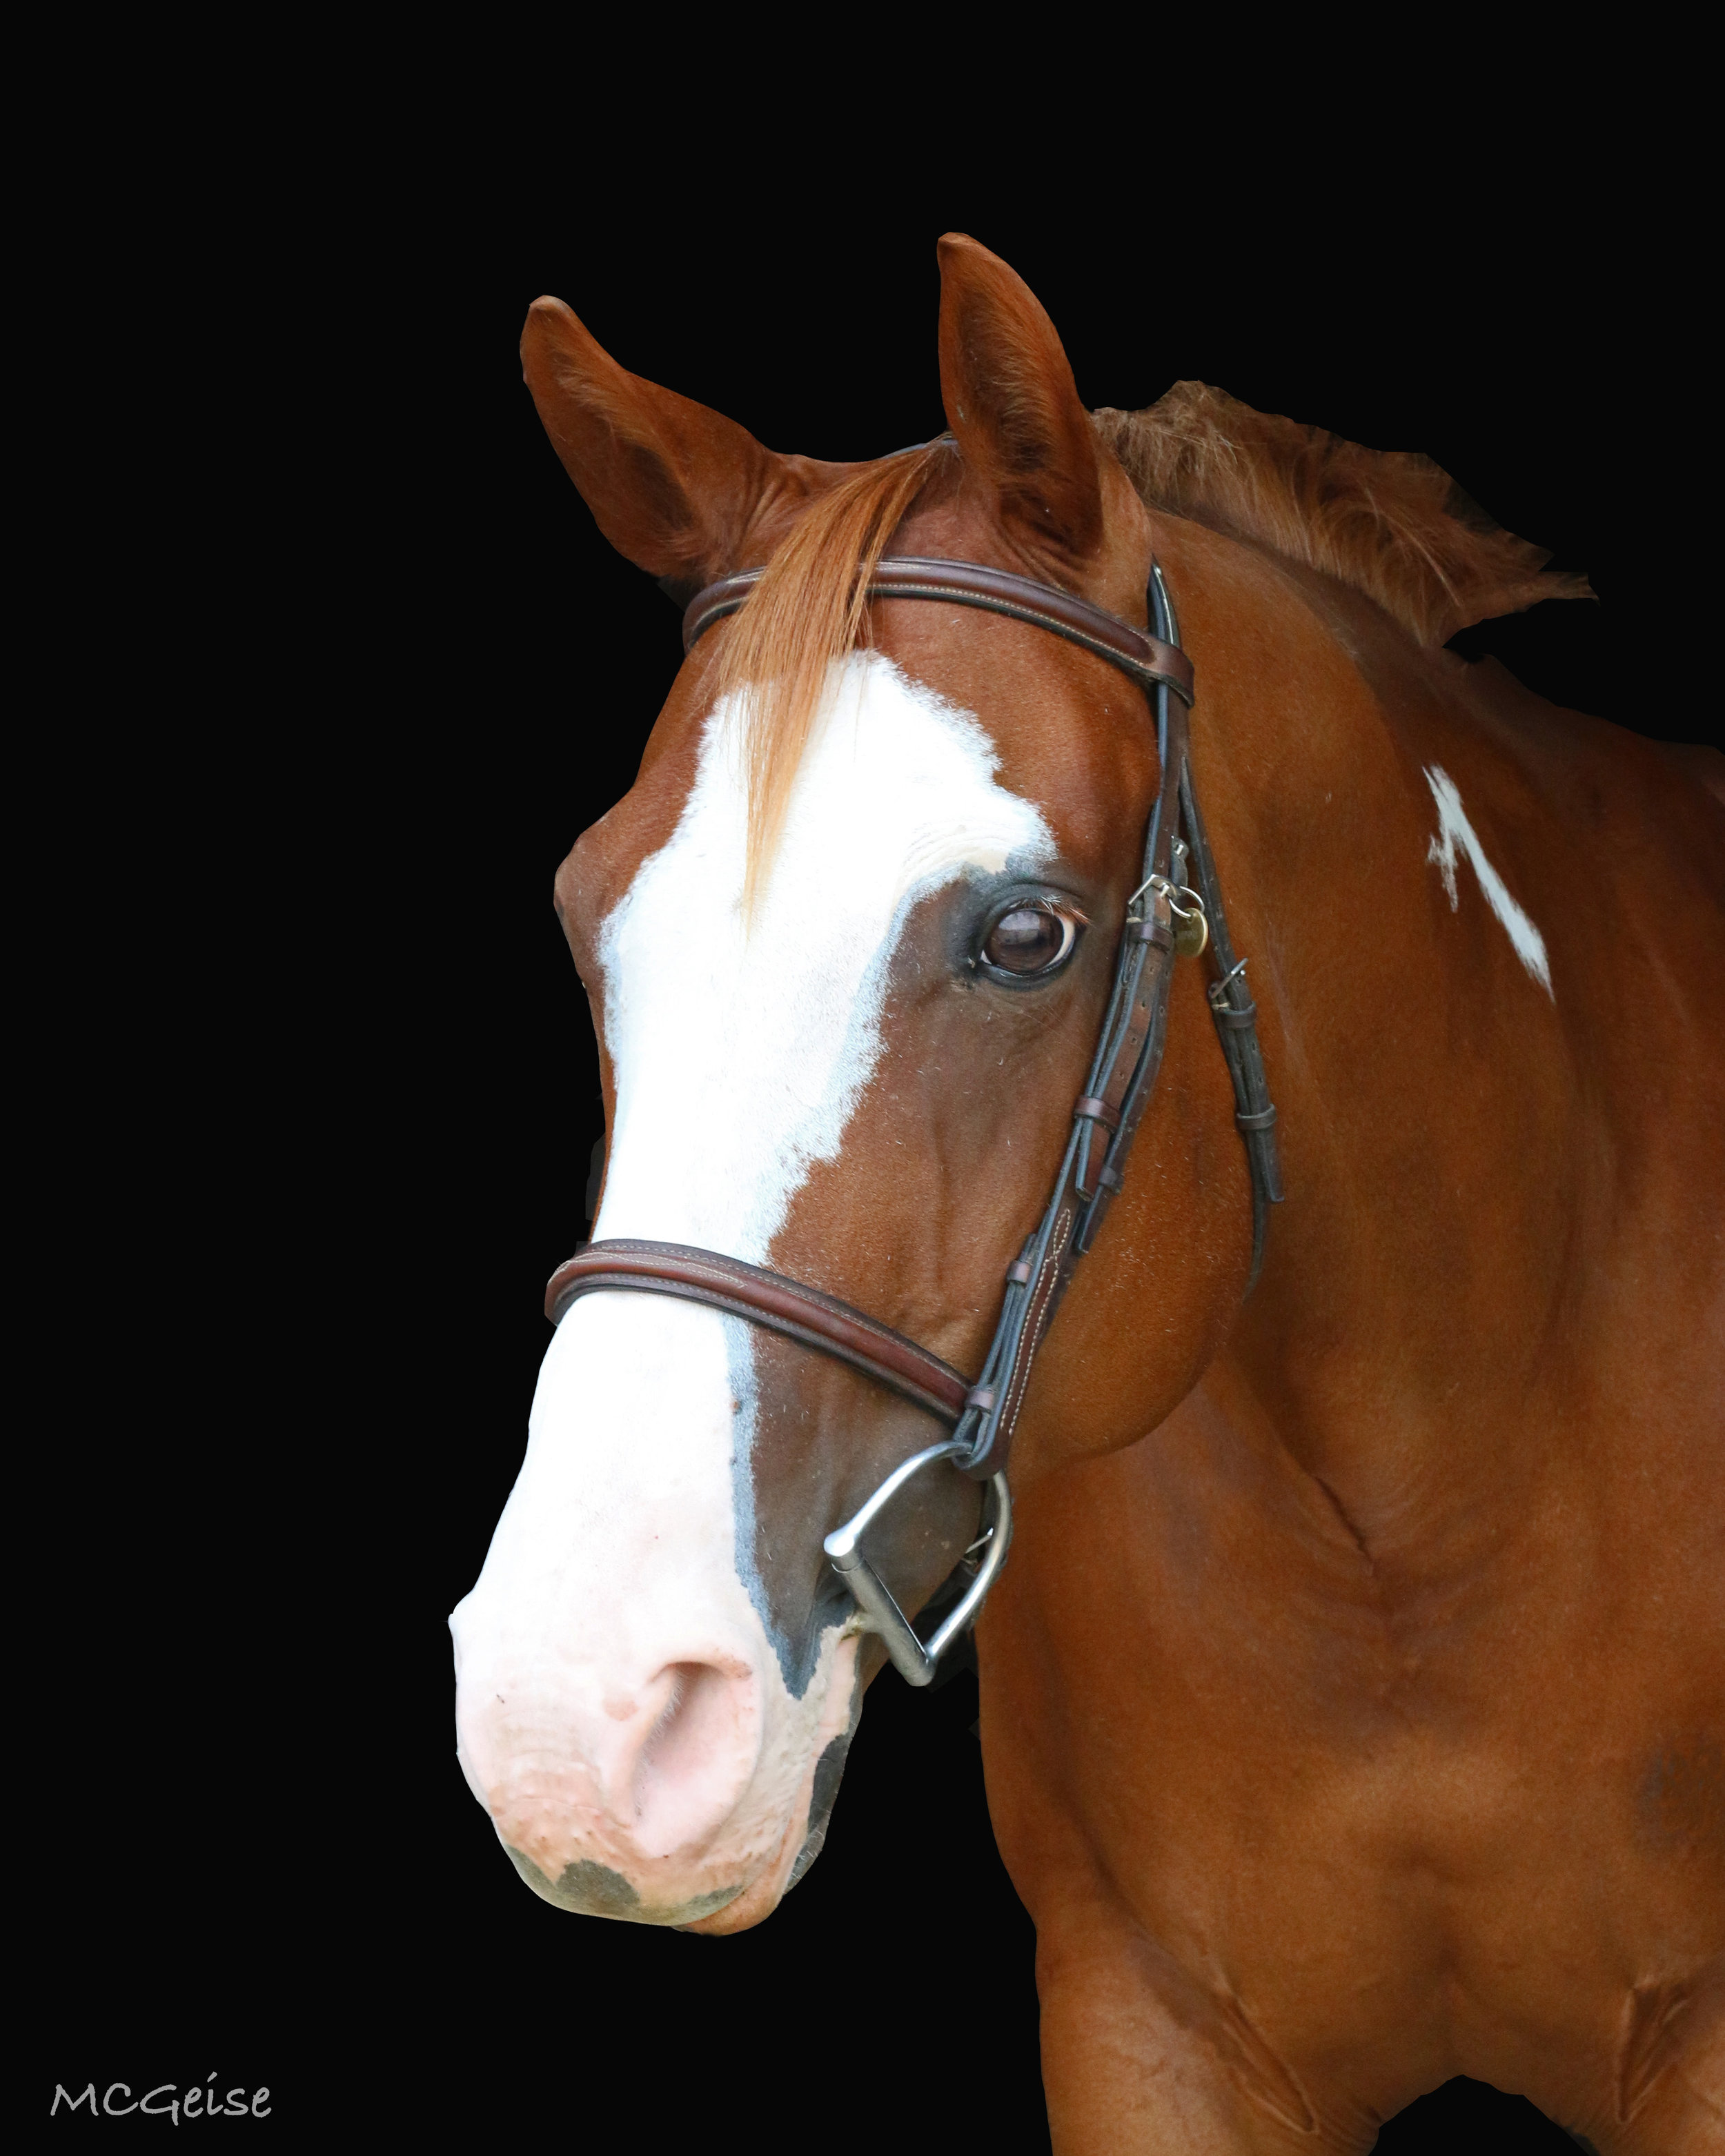 Birthday: 4/10/04 Breed: Paint Mare Color: Sorrel Height: 15 hands Discipline: Pleasure Show Name: Invited to the Party